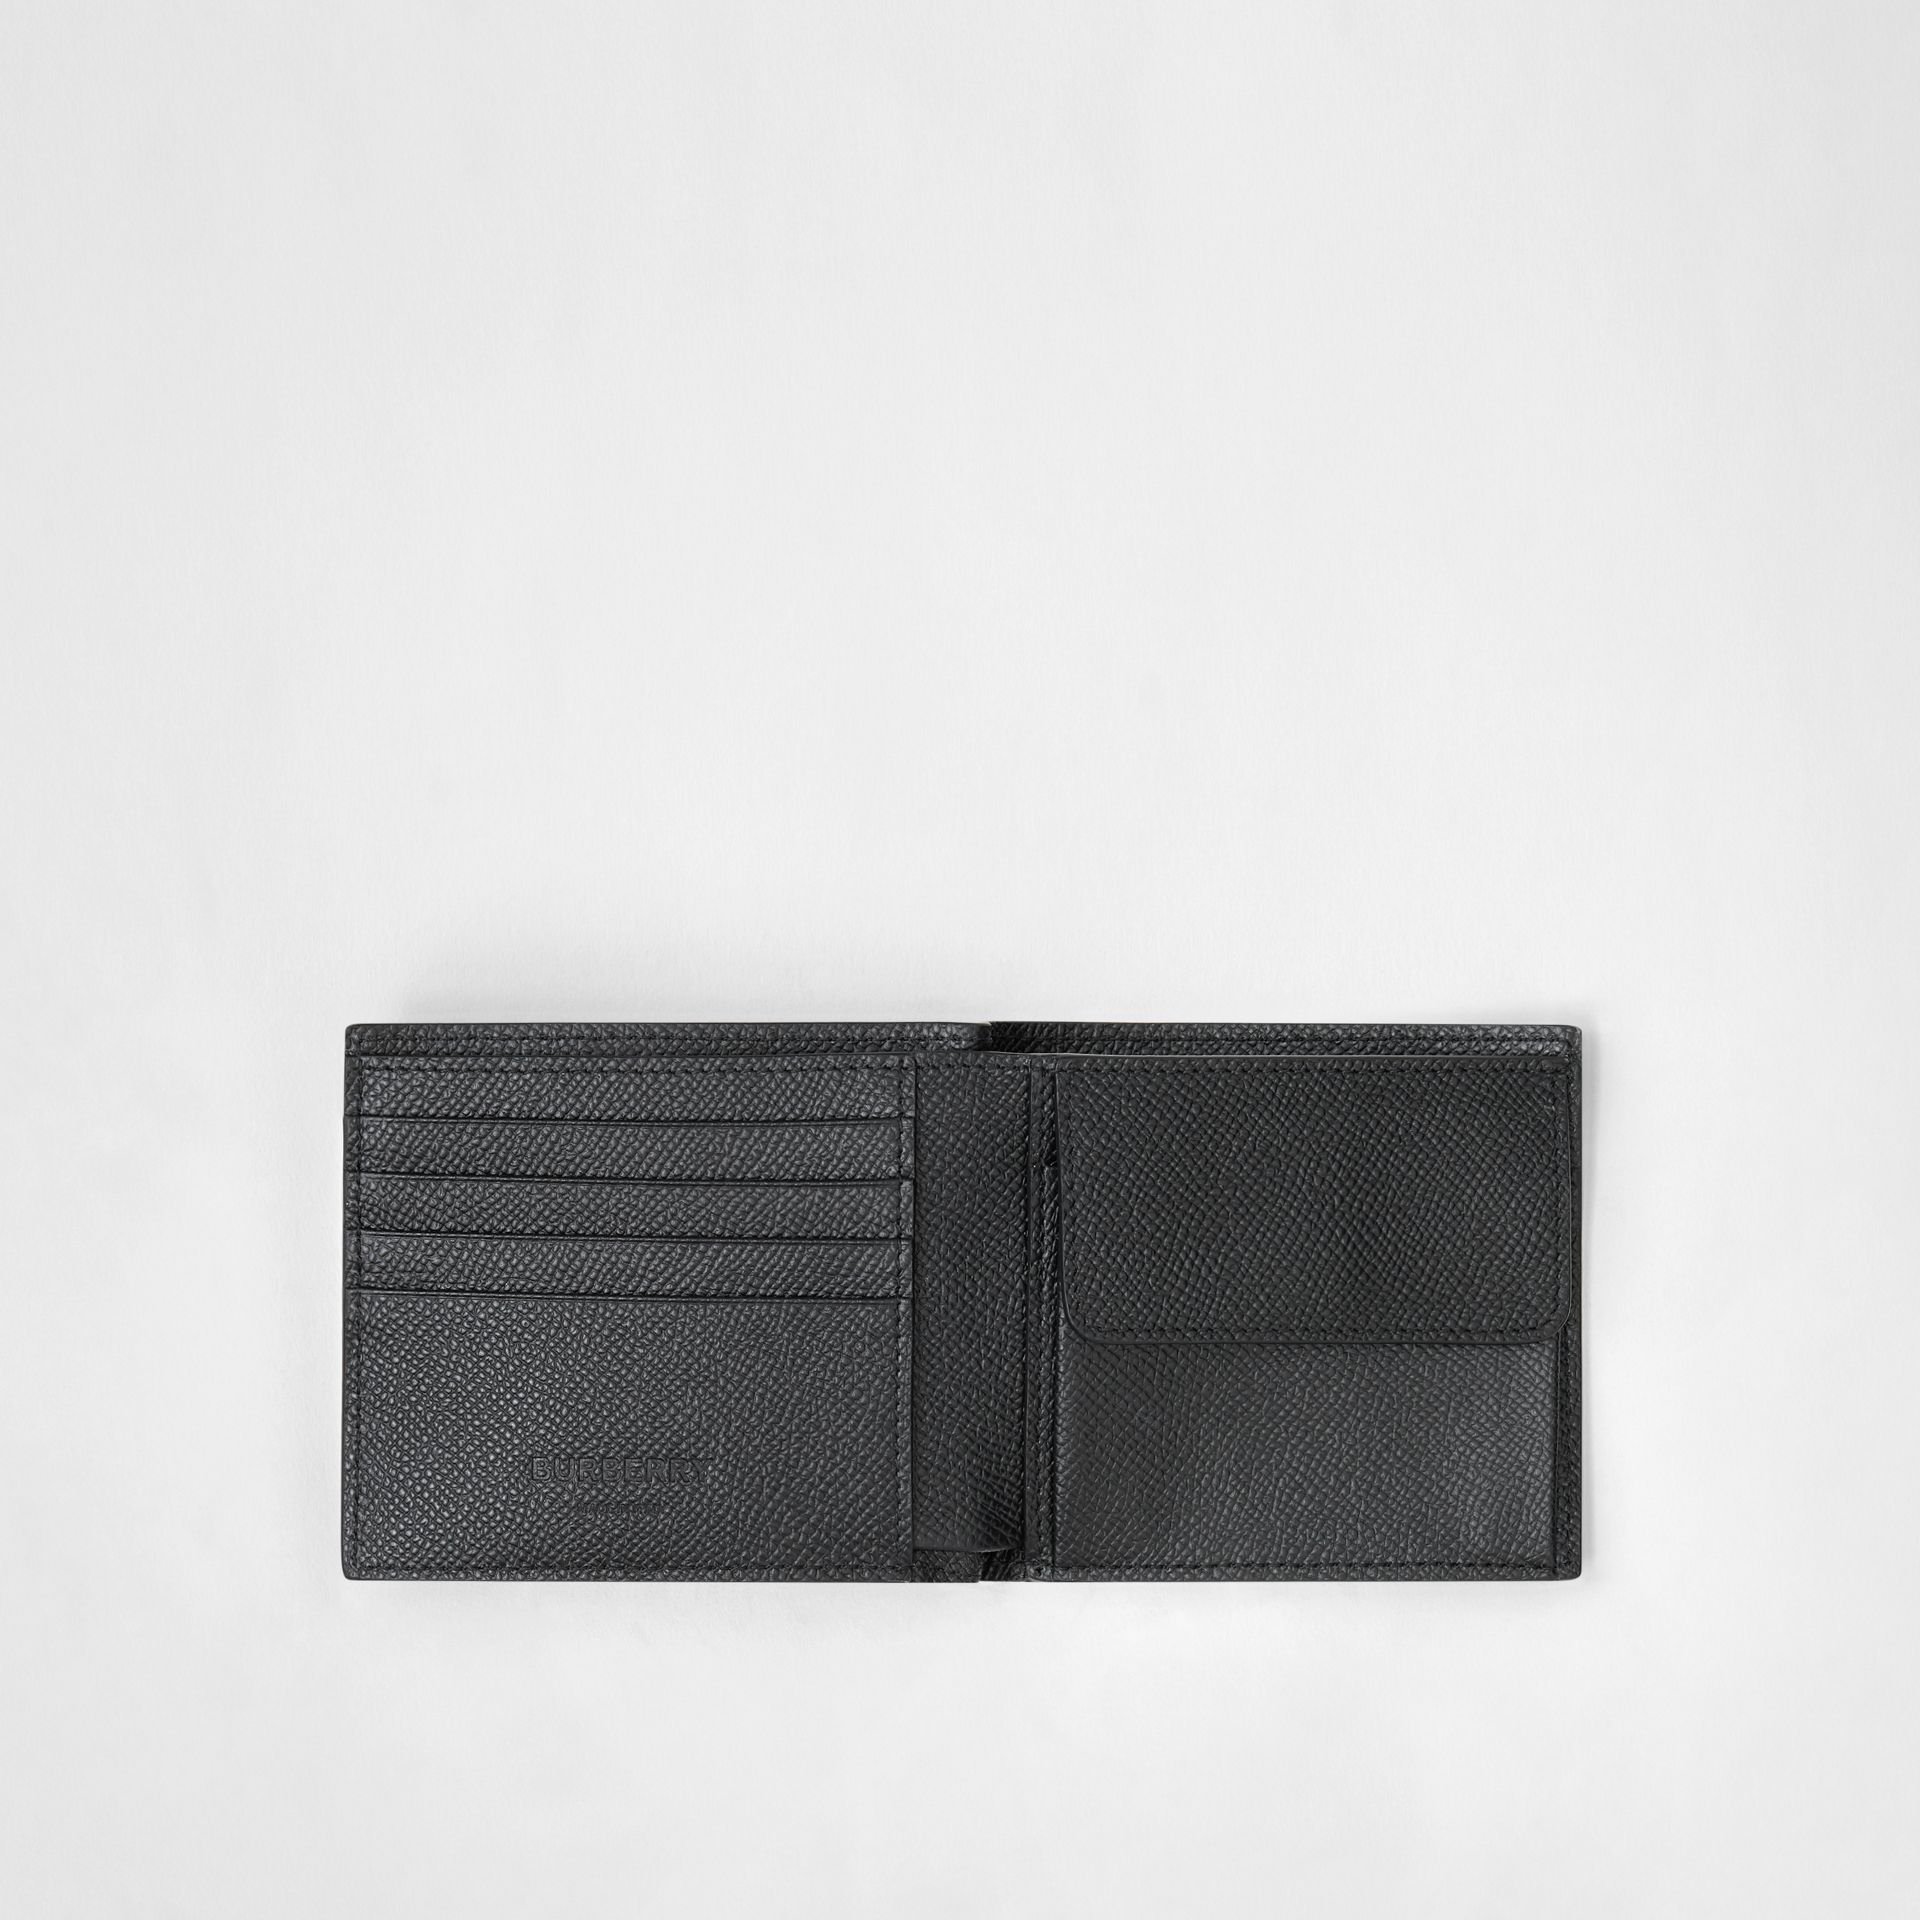 Grainy Leather International Bifold Coin Wallet in Black - Men | Burberry - gallery image 2